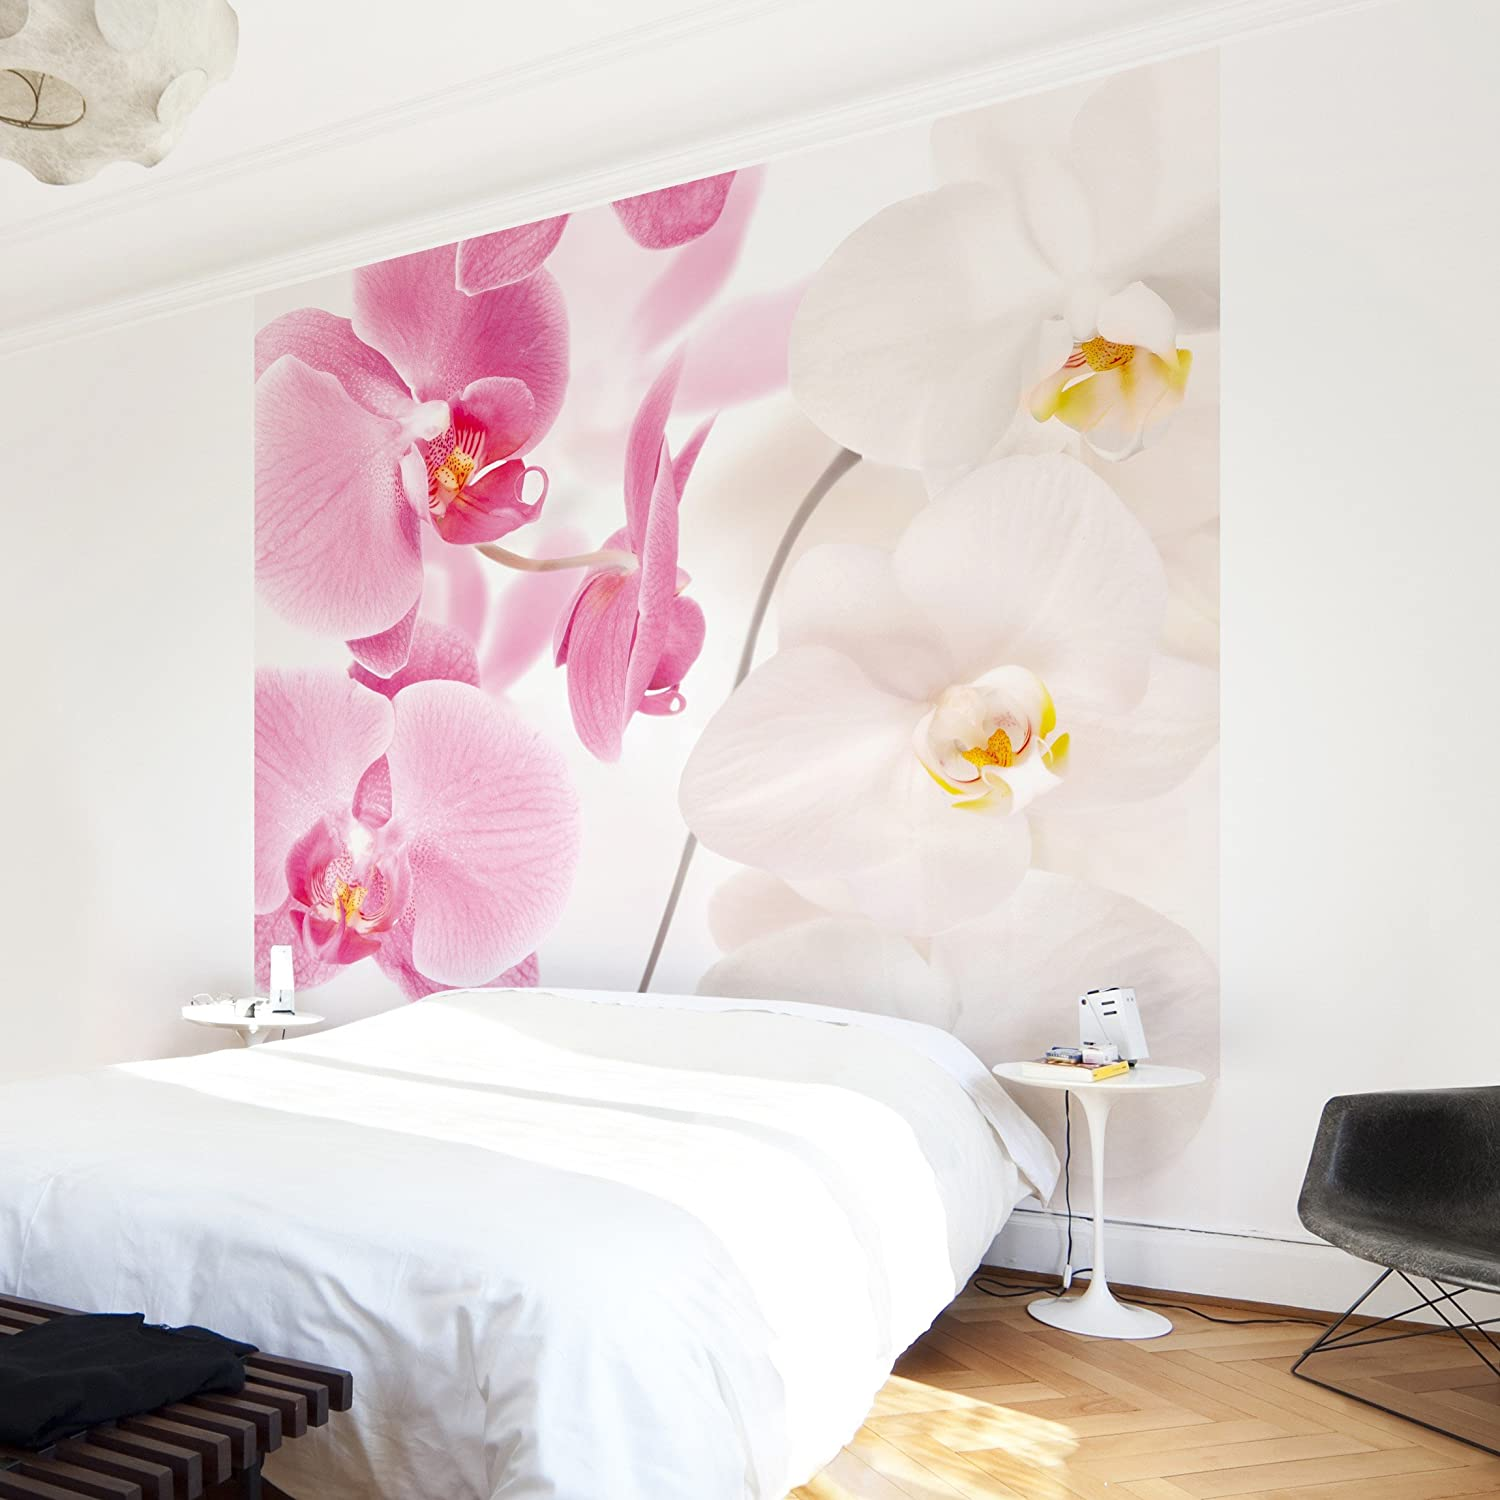 Fototapete schlafzimmer orchidee  Apalis Fototapete Orchidee - Vliestapete - Delicate Orchids ...